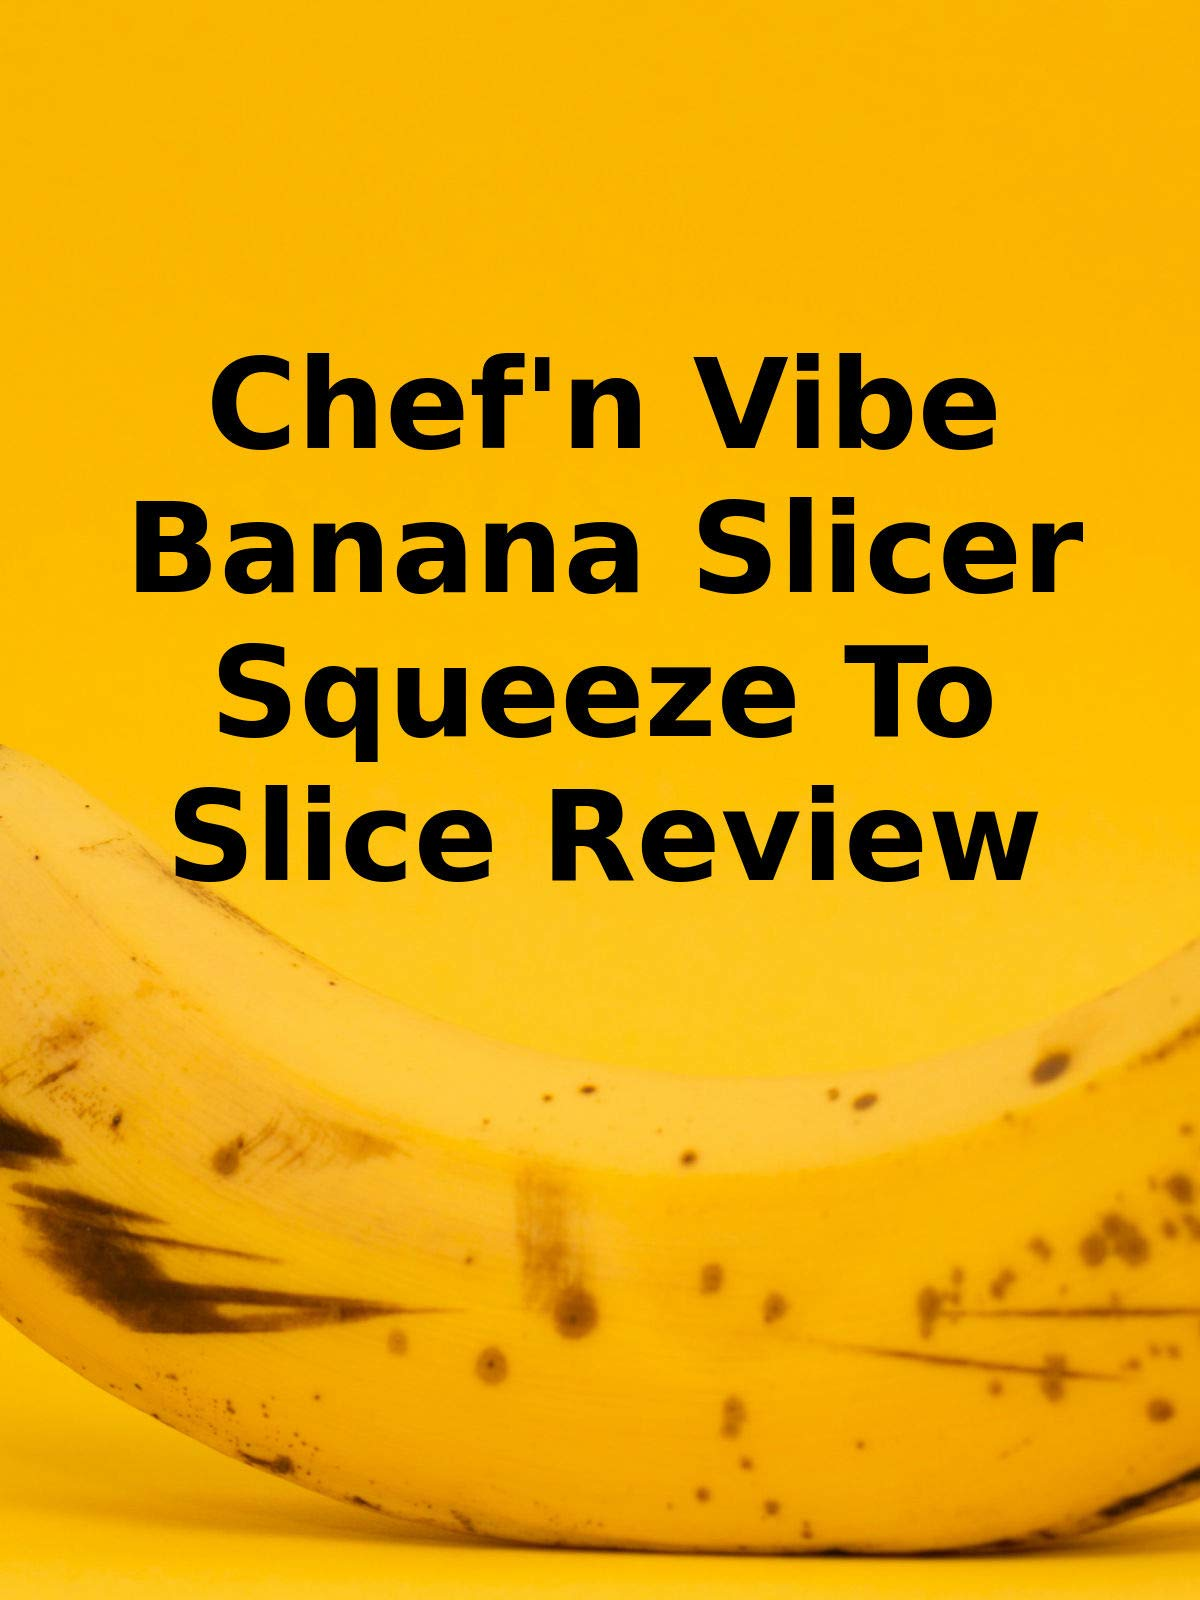 Review: Chef'n Vibe Banana Slicer Squeeze To Slice Review on Amazon Prime Video UK